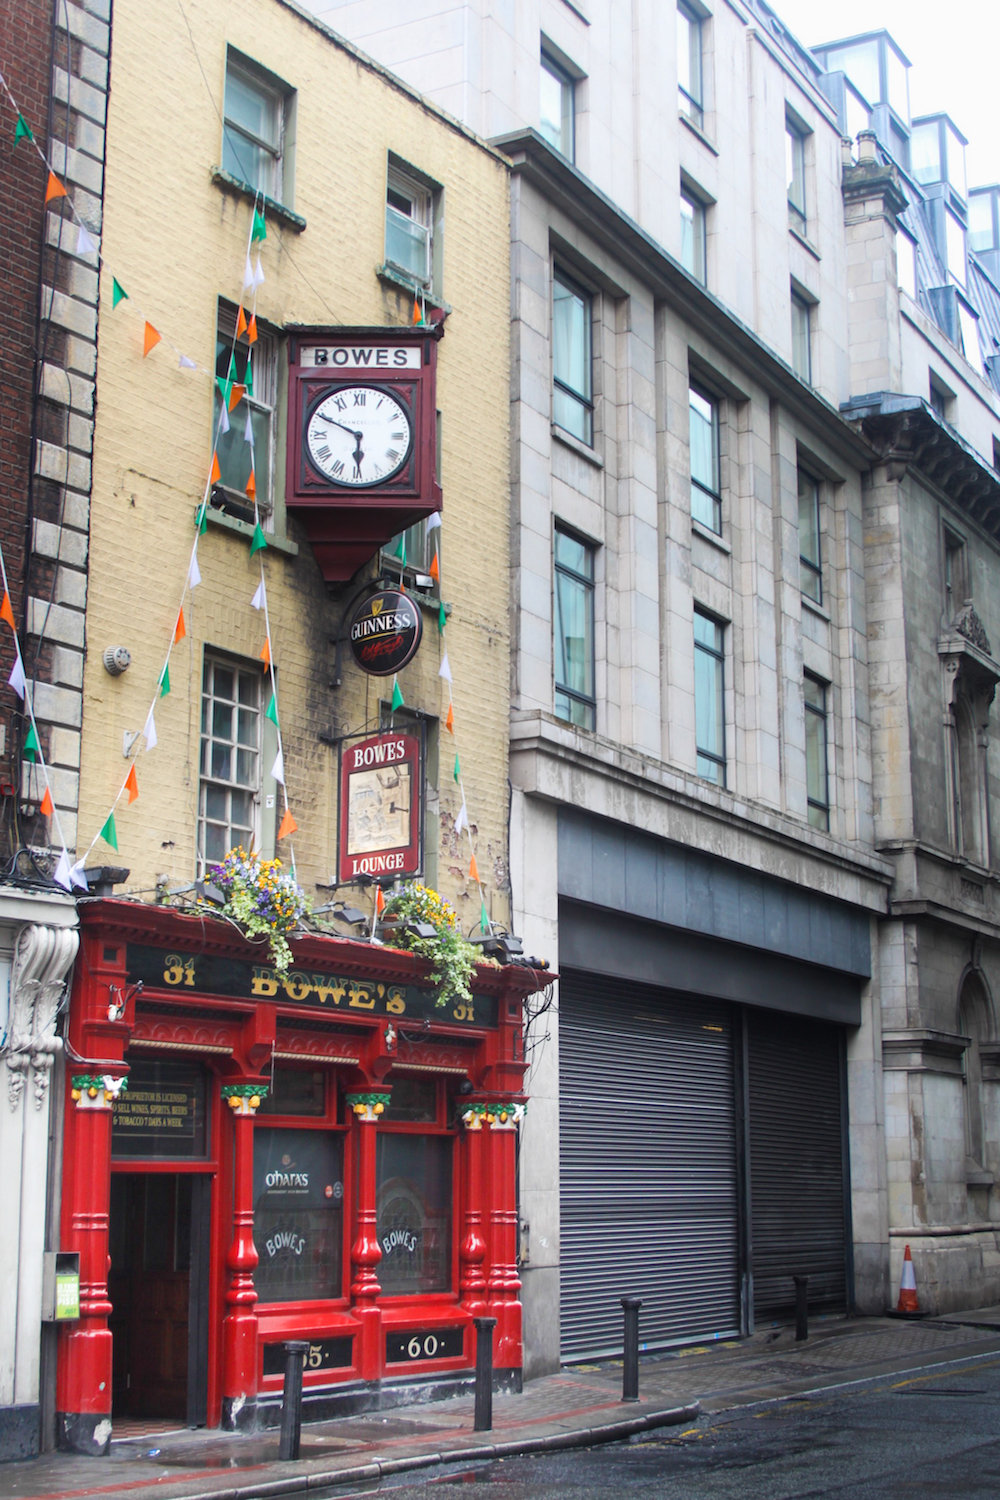 Just another pub in Dublin (Eat Me. Drink Me.)